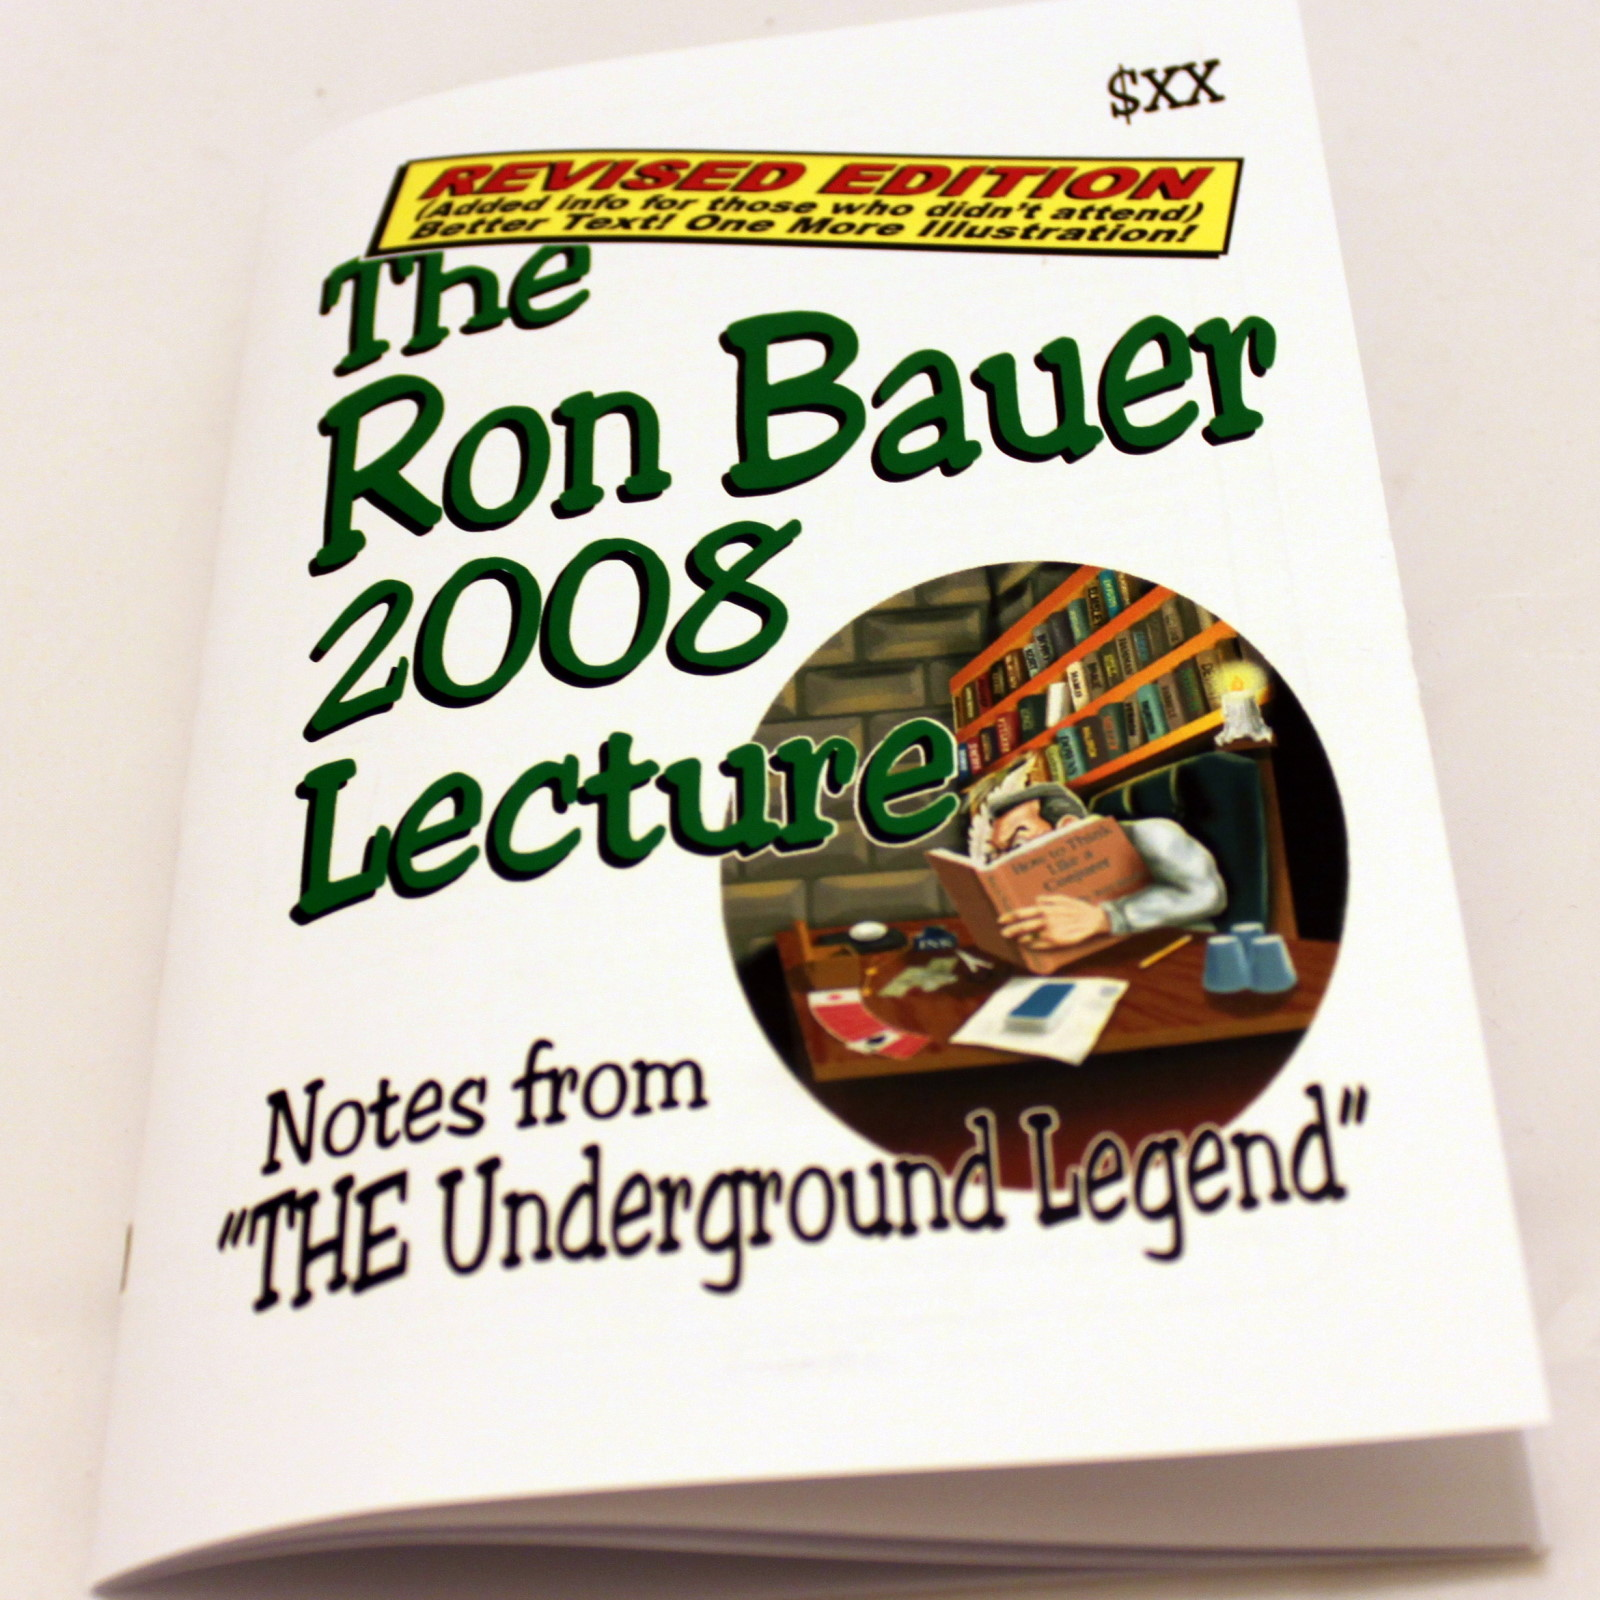 Bauer - 2008 Lecture Notes by Ron Bauer